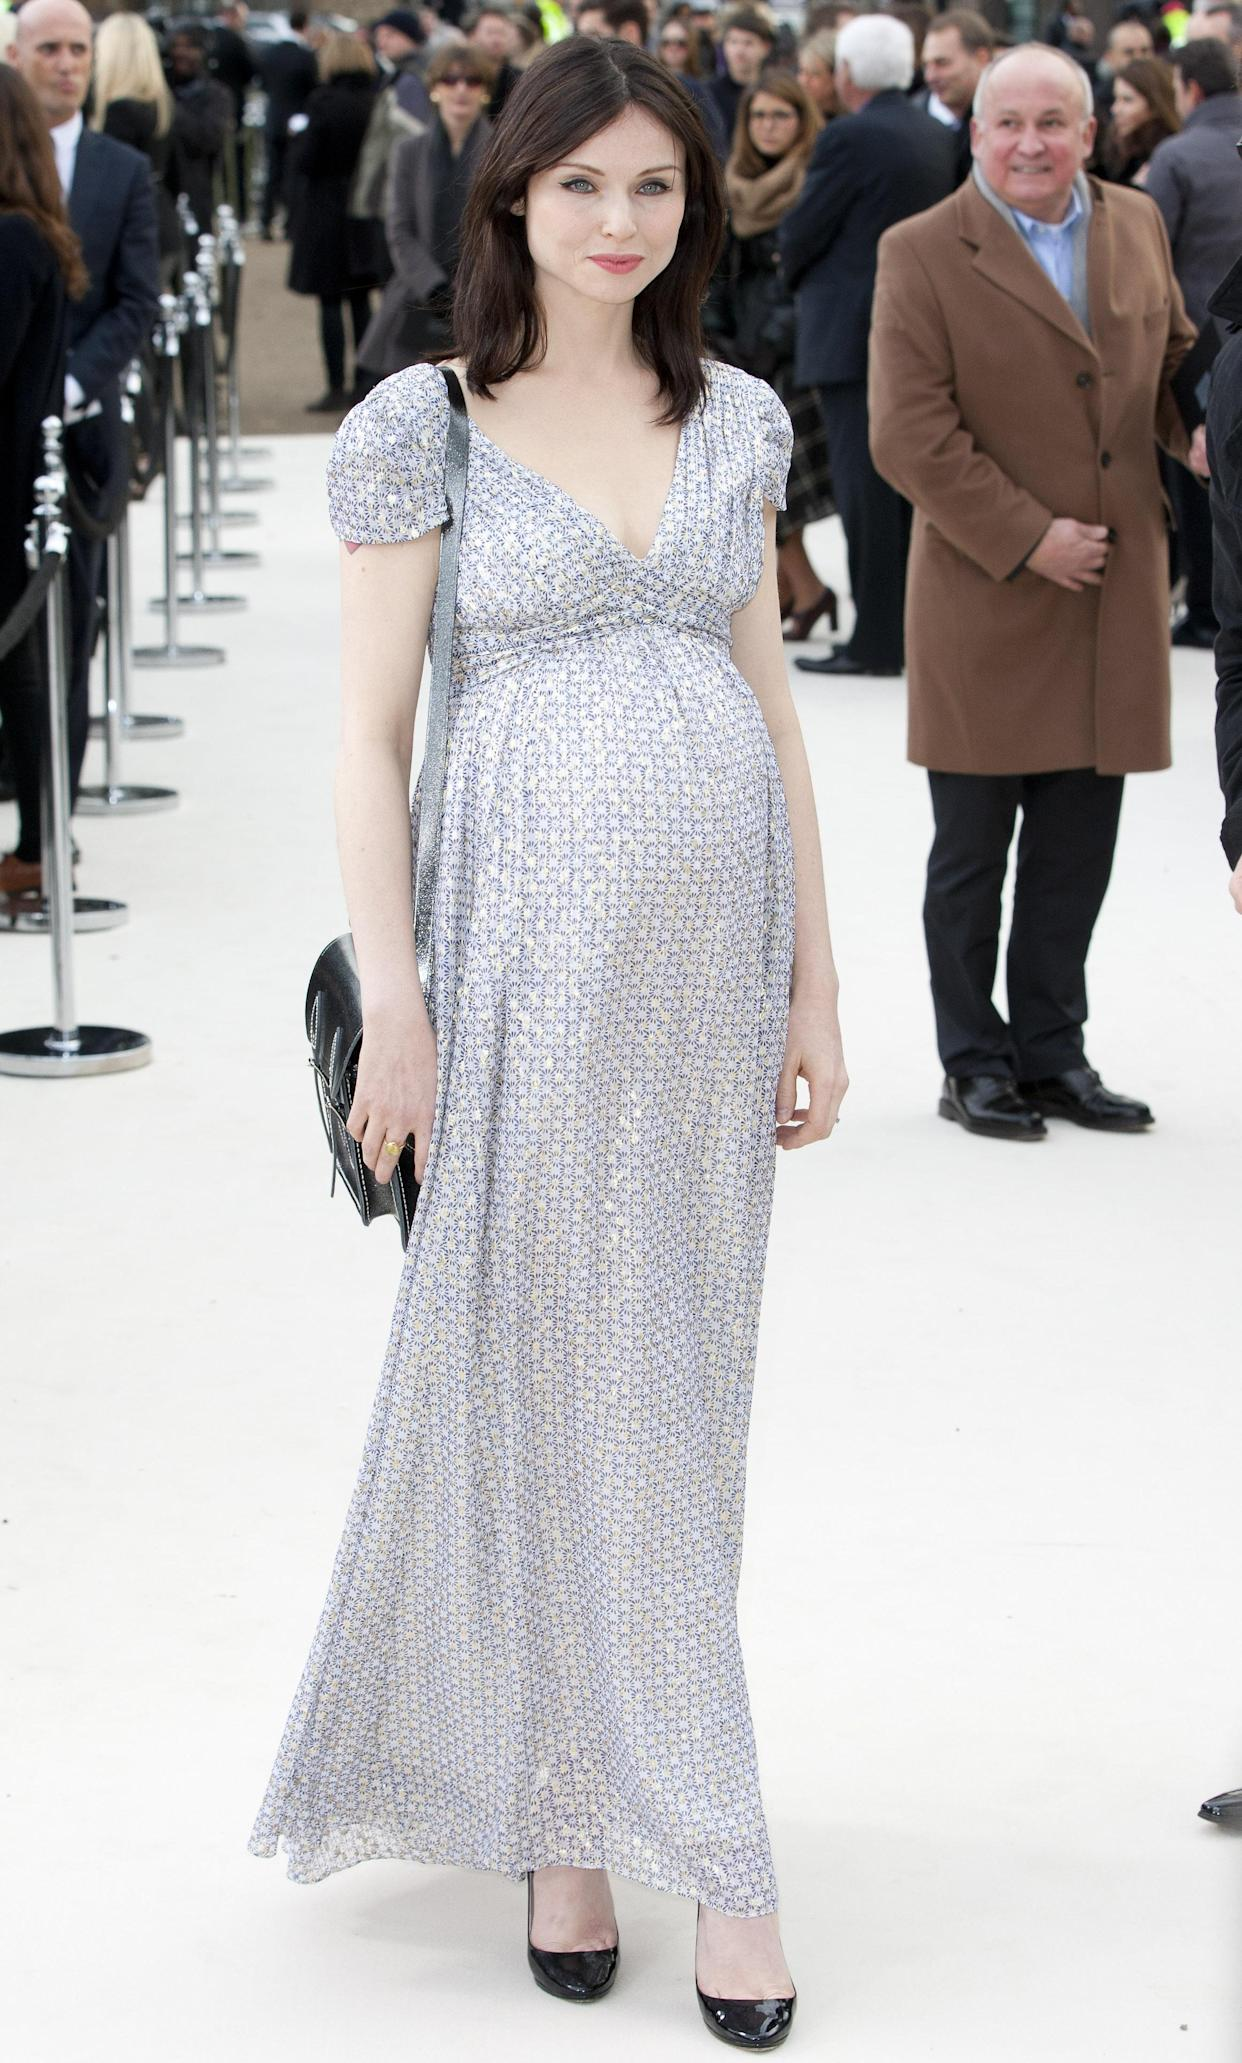 Sophie Ellis-Bextor, seen her pregnant with her third son Ray, says whether you're pregnant or not is a private thing. (Photo by John Phillips/UK Press via Getty Images)